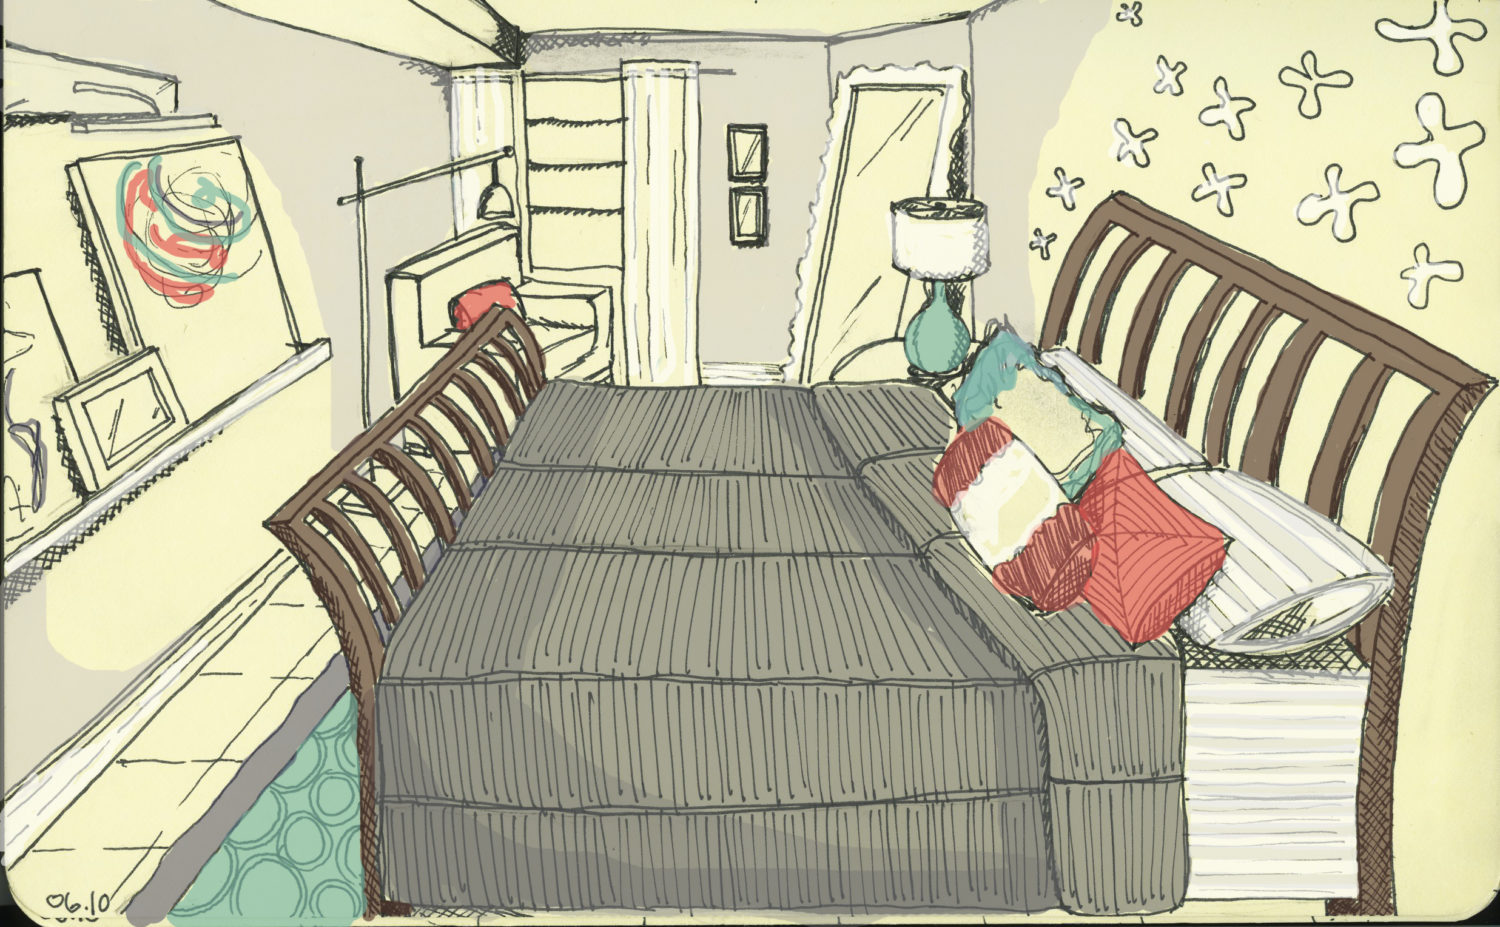 danielle's bedroom - sketch copy